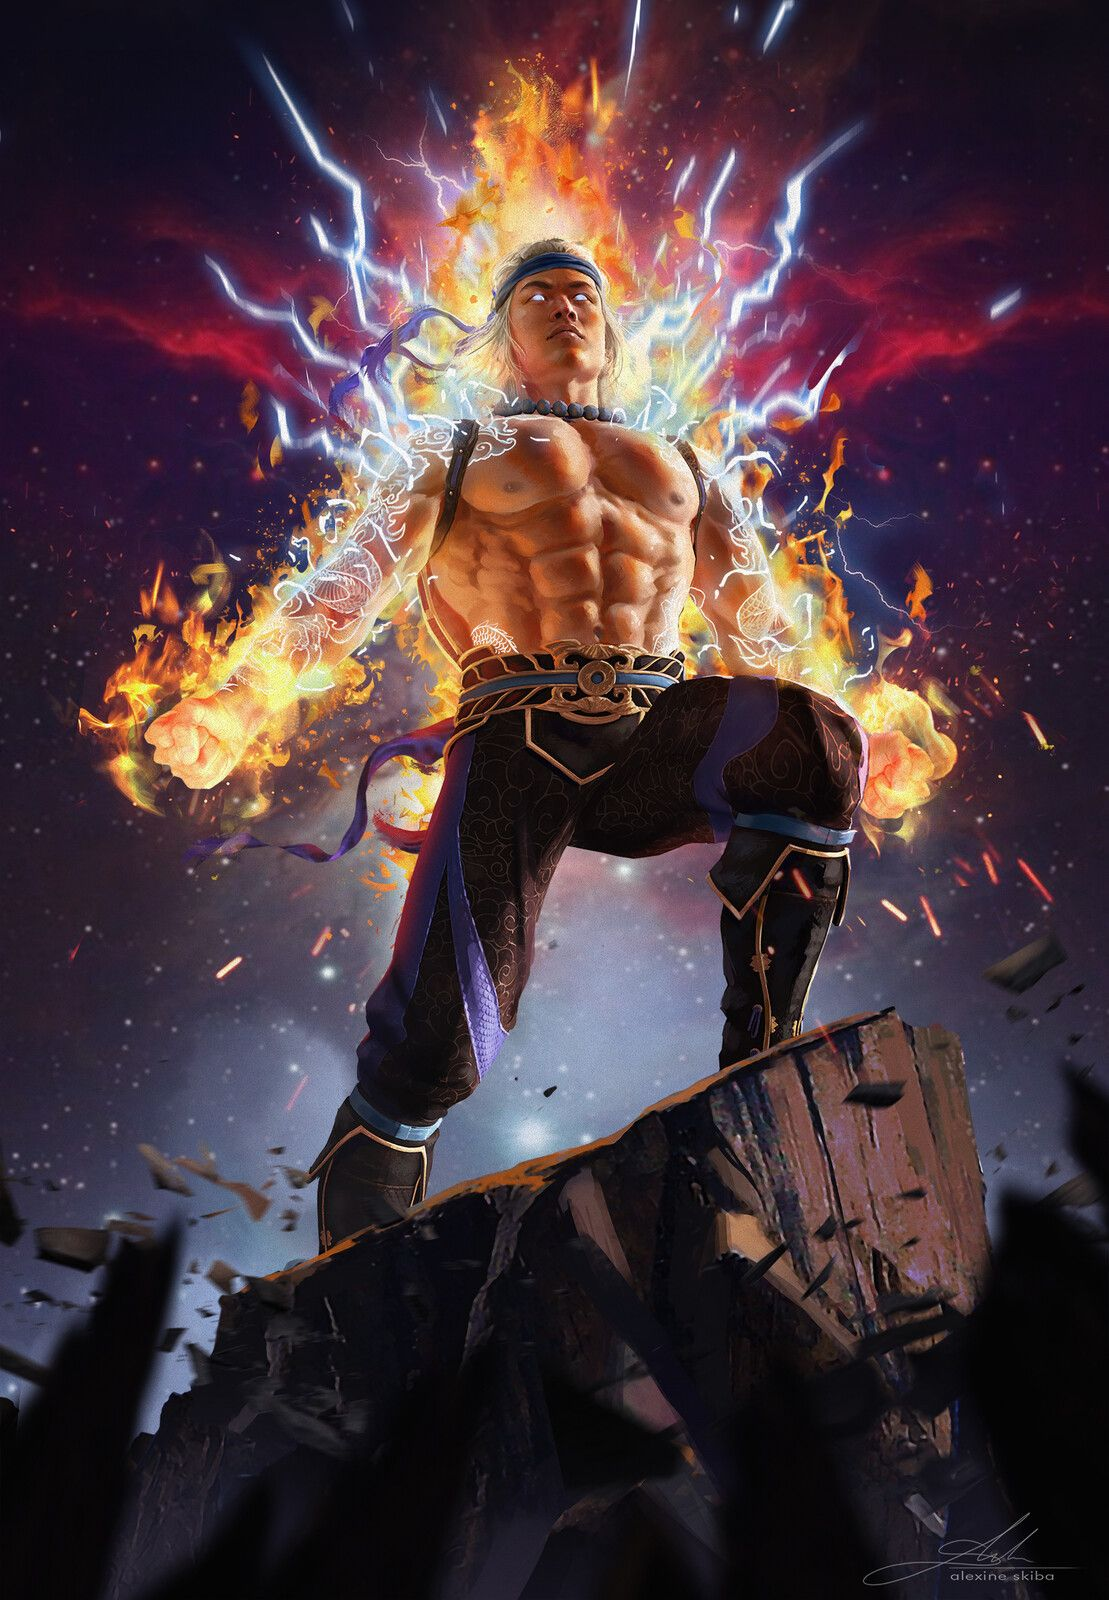 Liu Kang God Of Thunder And Fire Aleksandra Skiba On Artstation At Https Www Artstation Co Raiden Mortal Kombat Mortal Kombat Art Mortal Kombat Characters